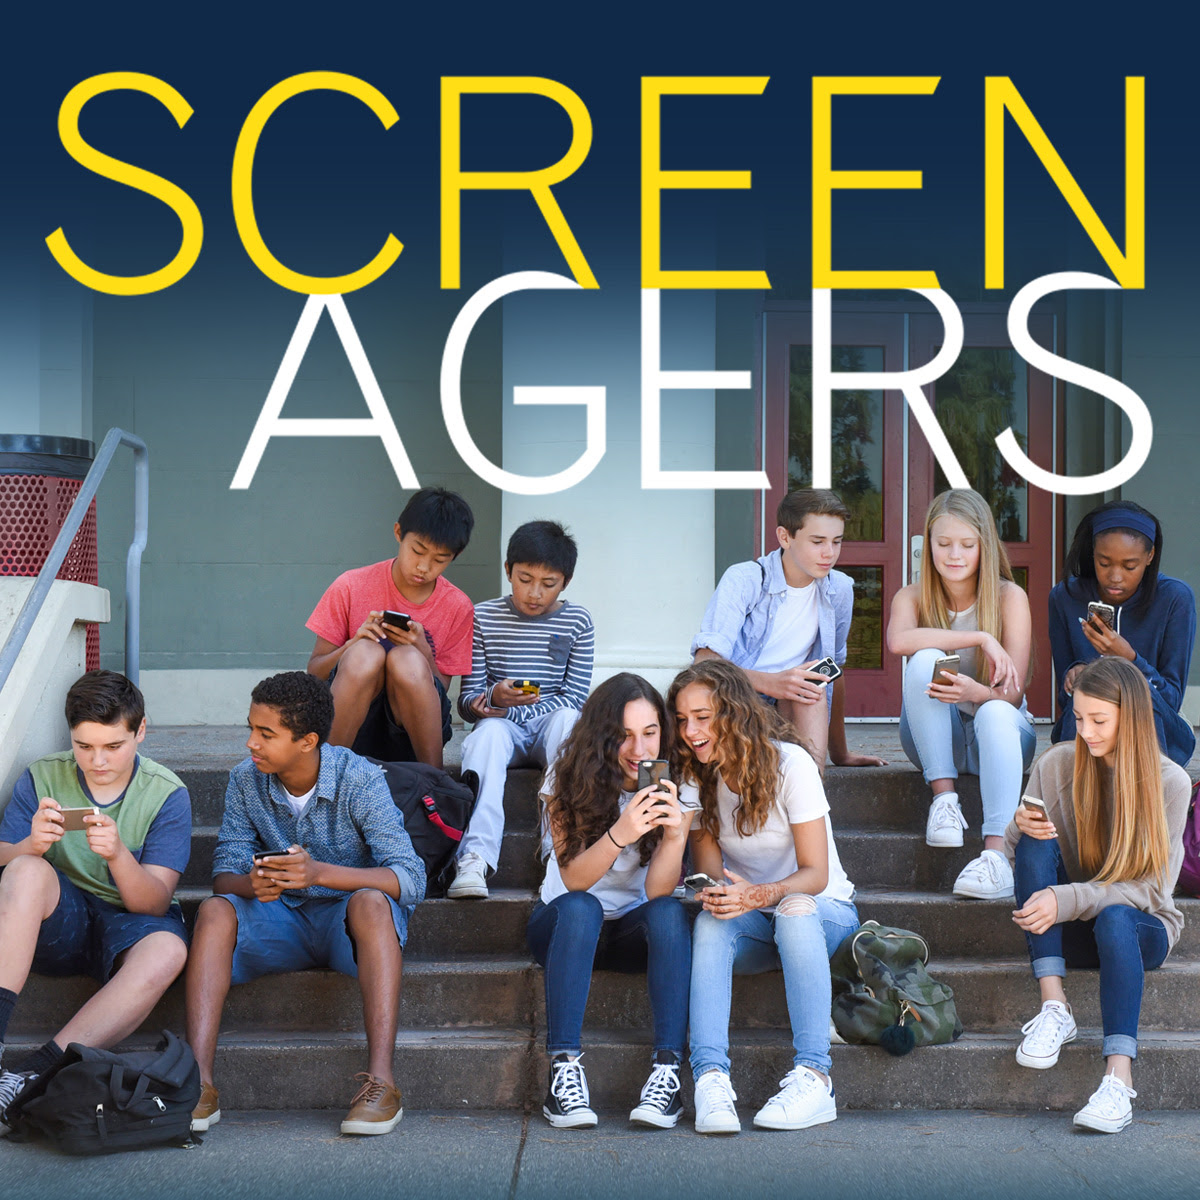 Screenagers Film Presented By Saline Area Schools